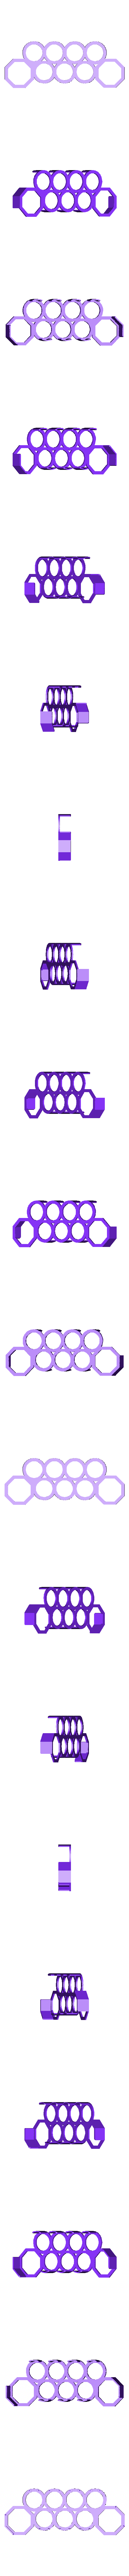 Container_Coins_LID.stl Download free STL file Gloomhaven Full Storage Solution (Monsters/Overlays/Cards) • 3D printing object, rsegers